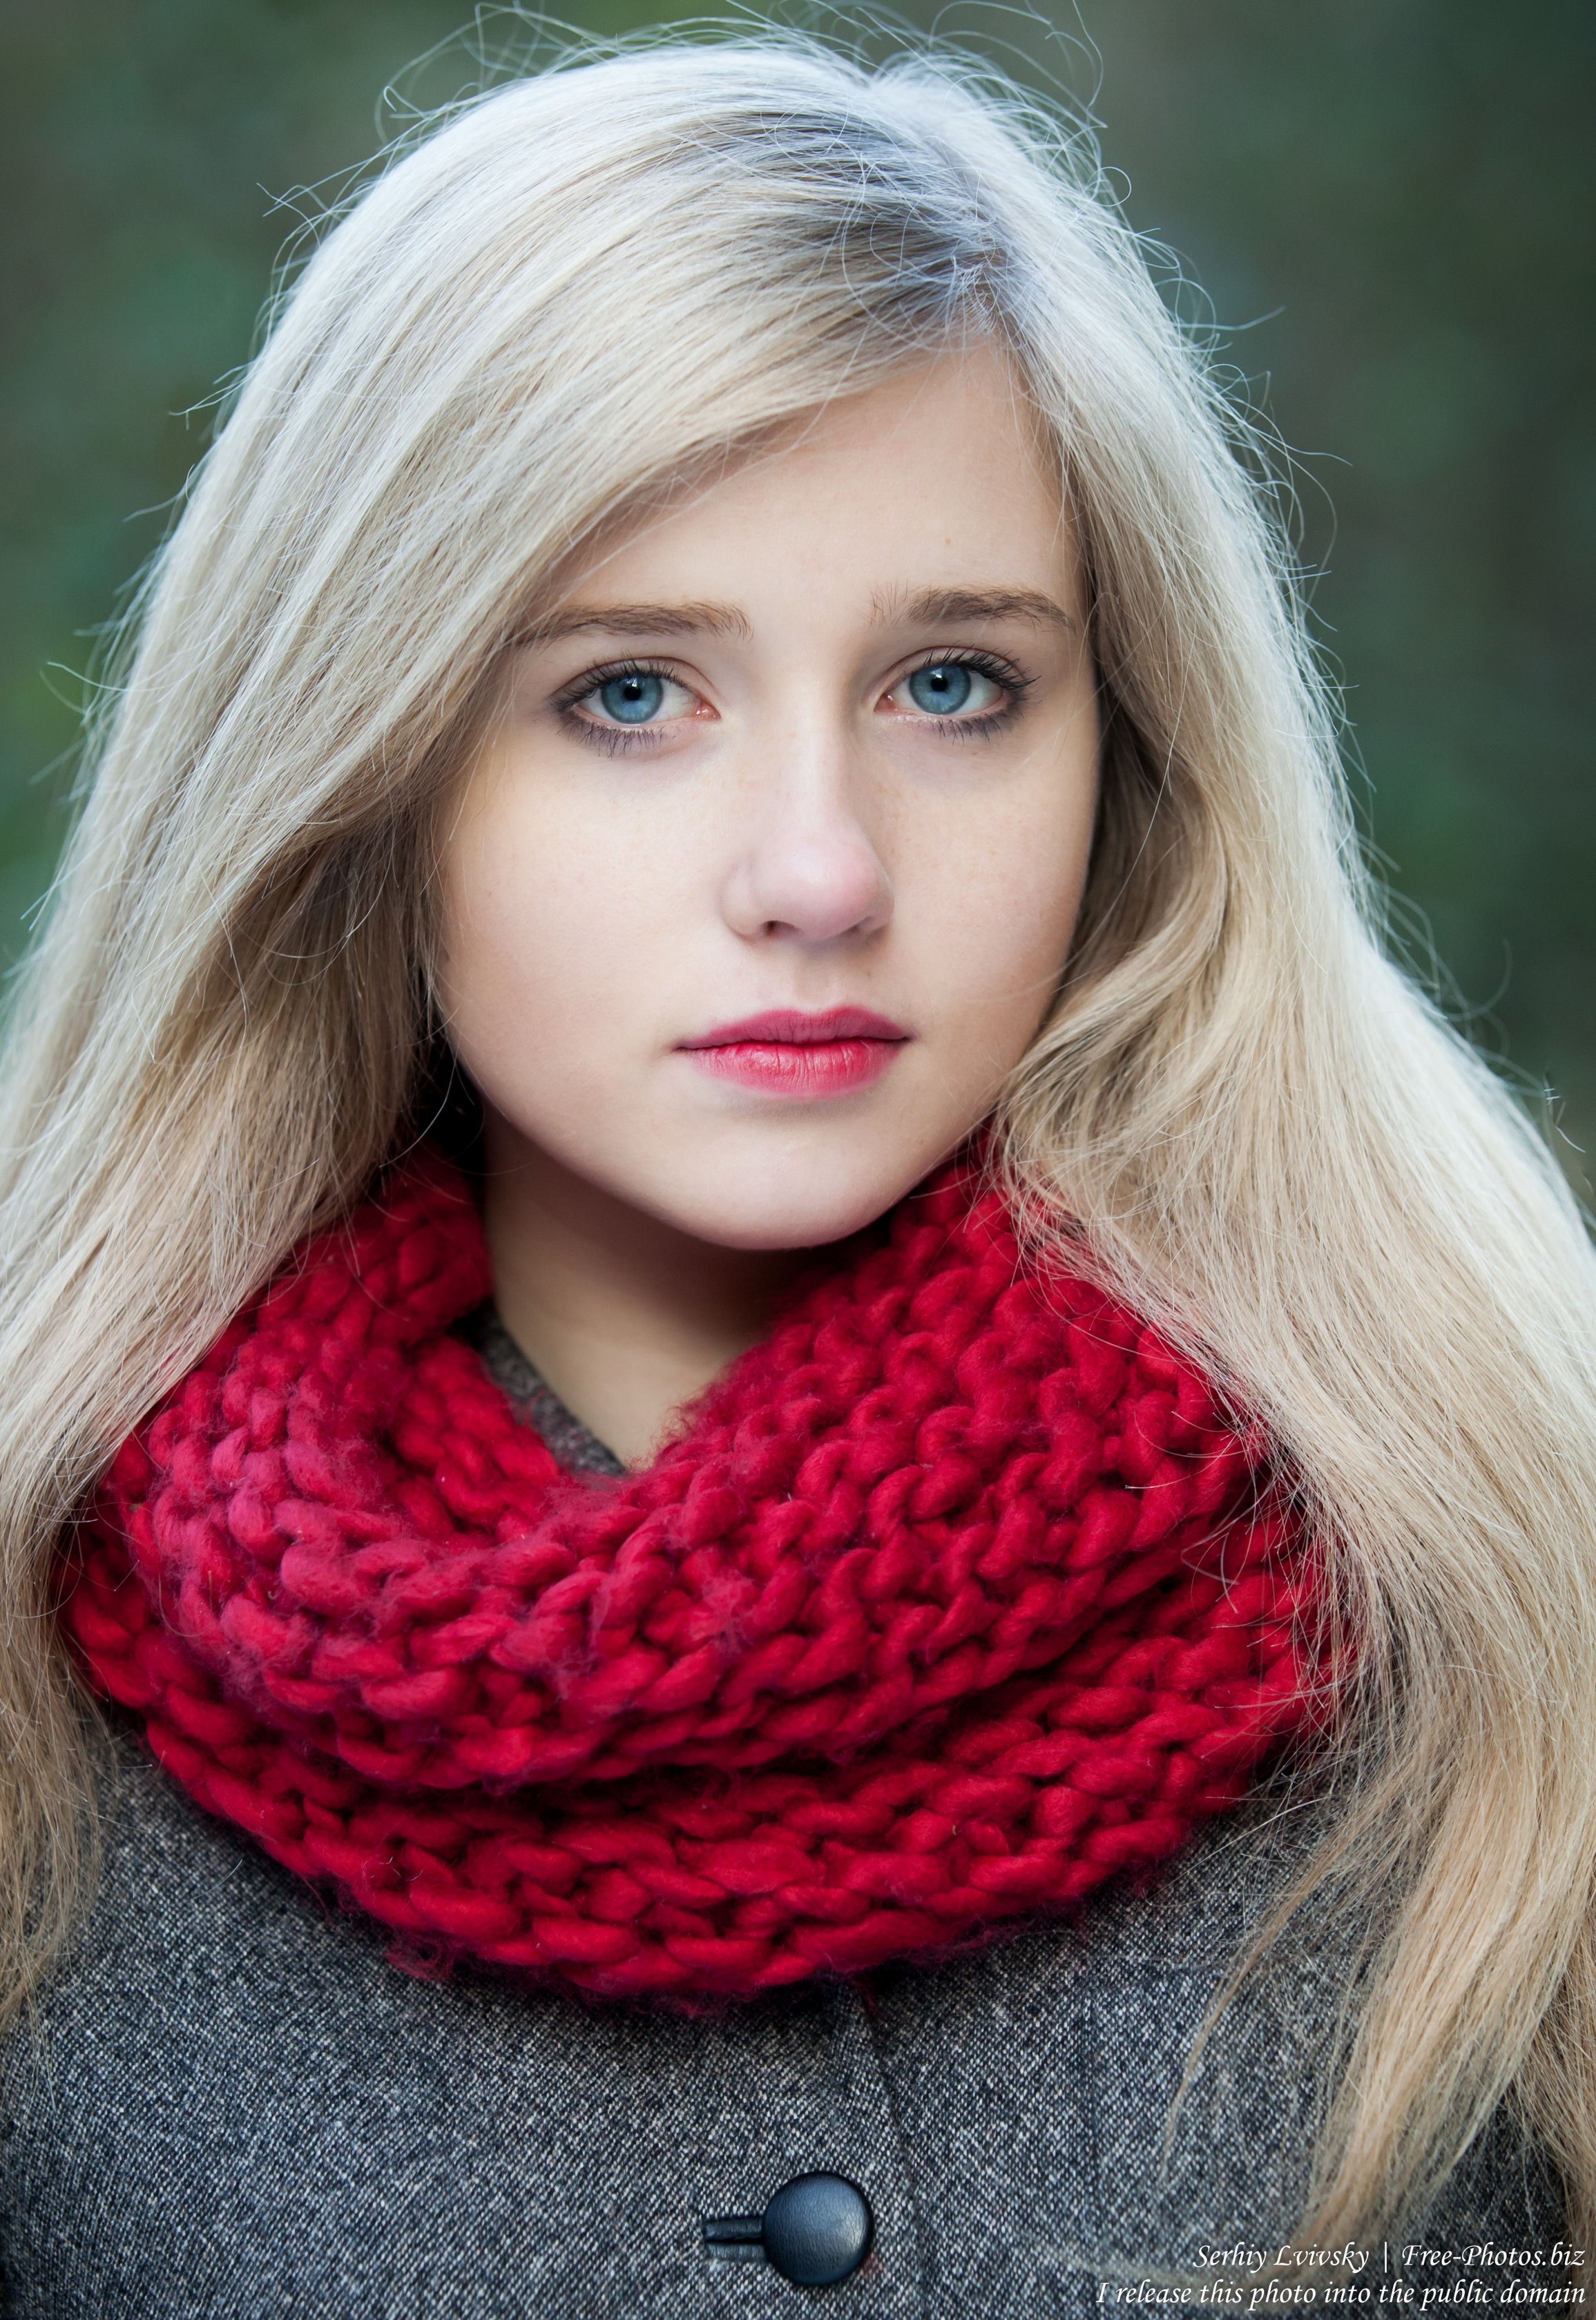 a seventeen-year-old natural blond girl with blue eyes photographed by Serhiy Lvivsky in October 2015, picture 13